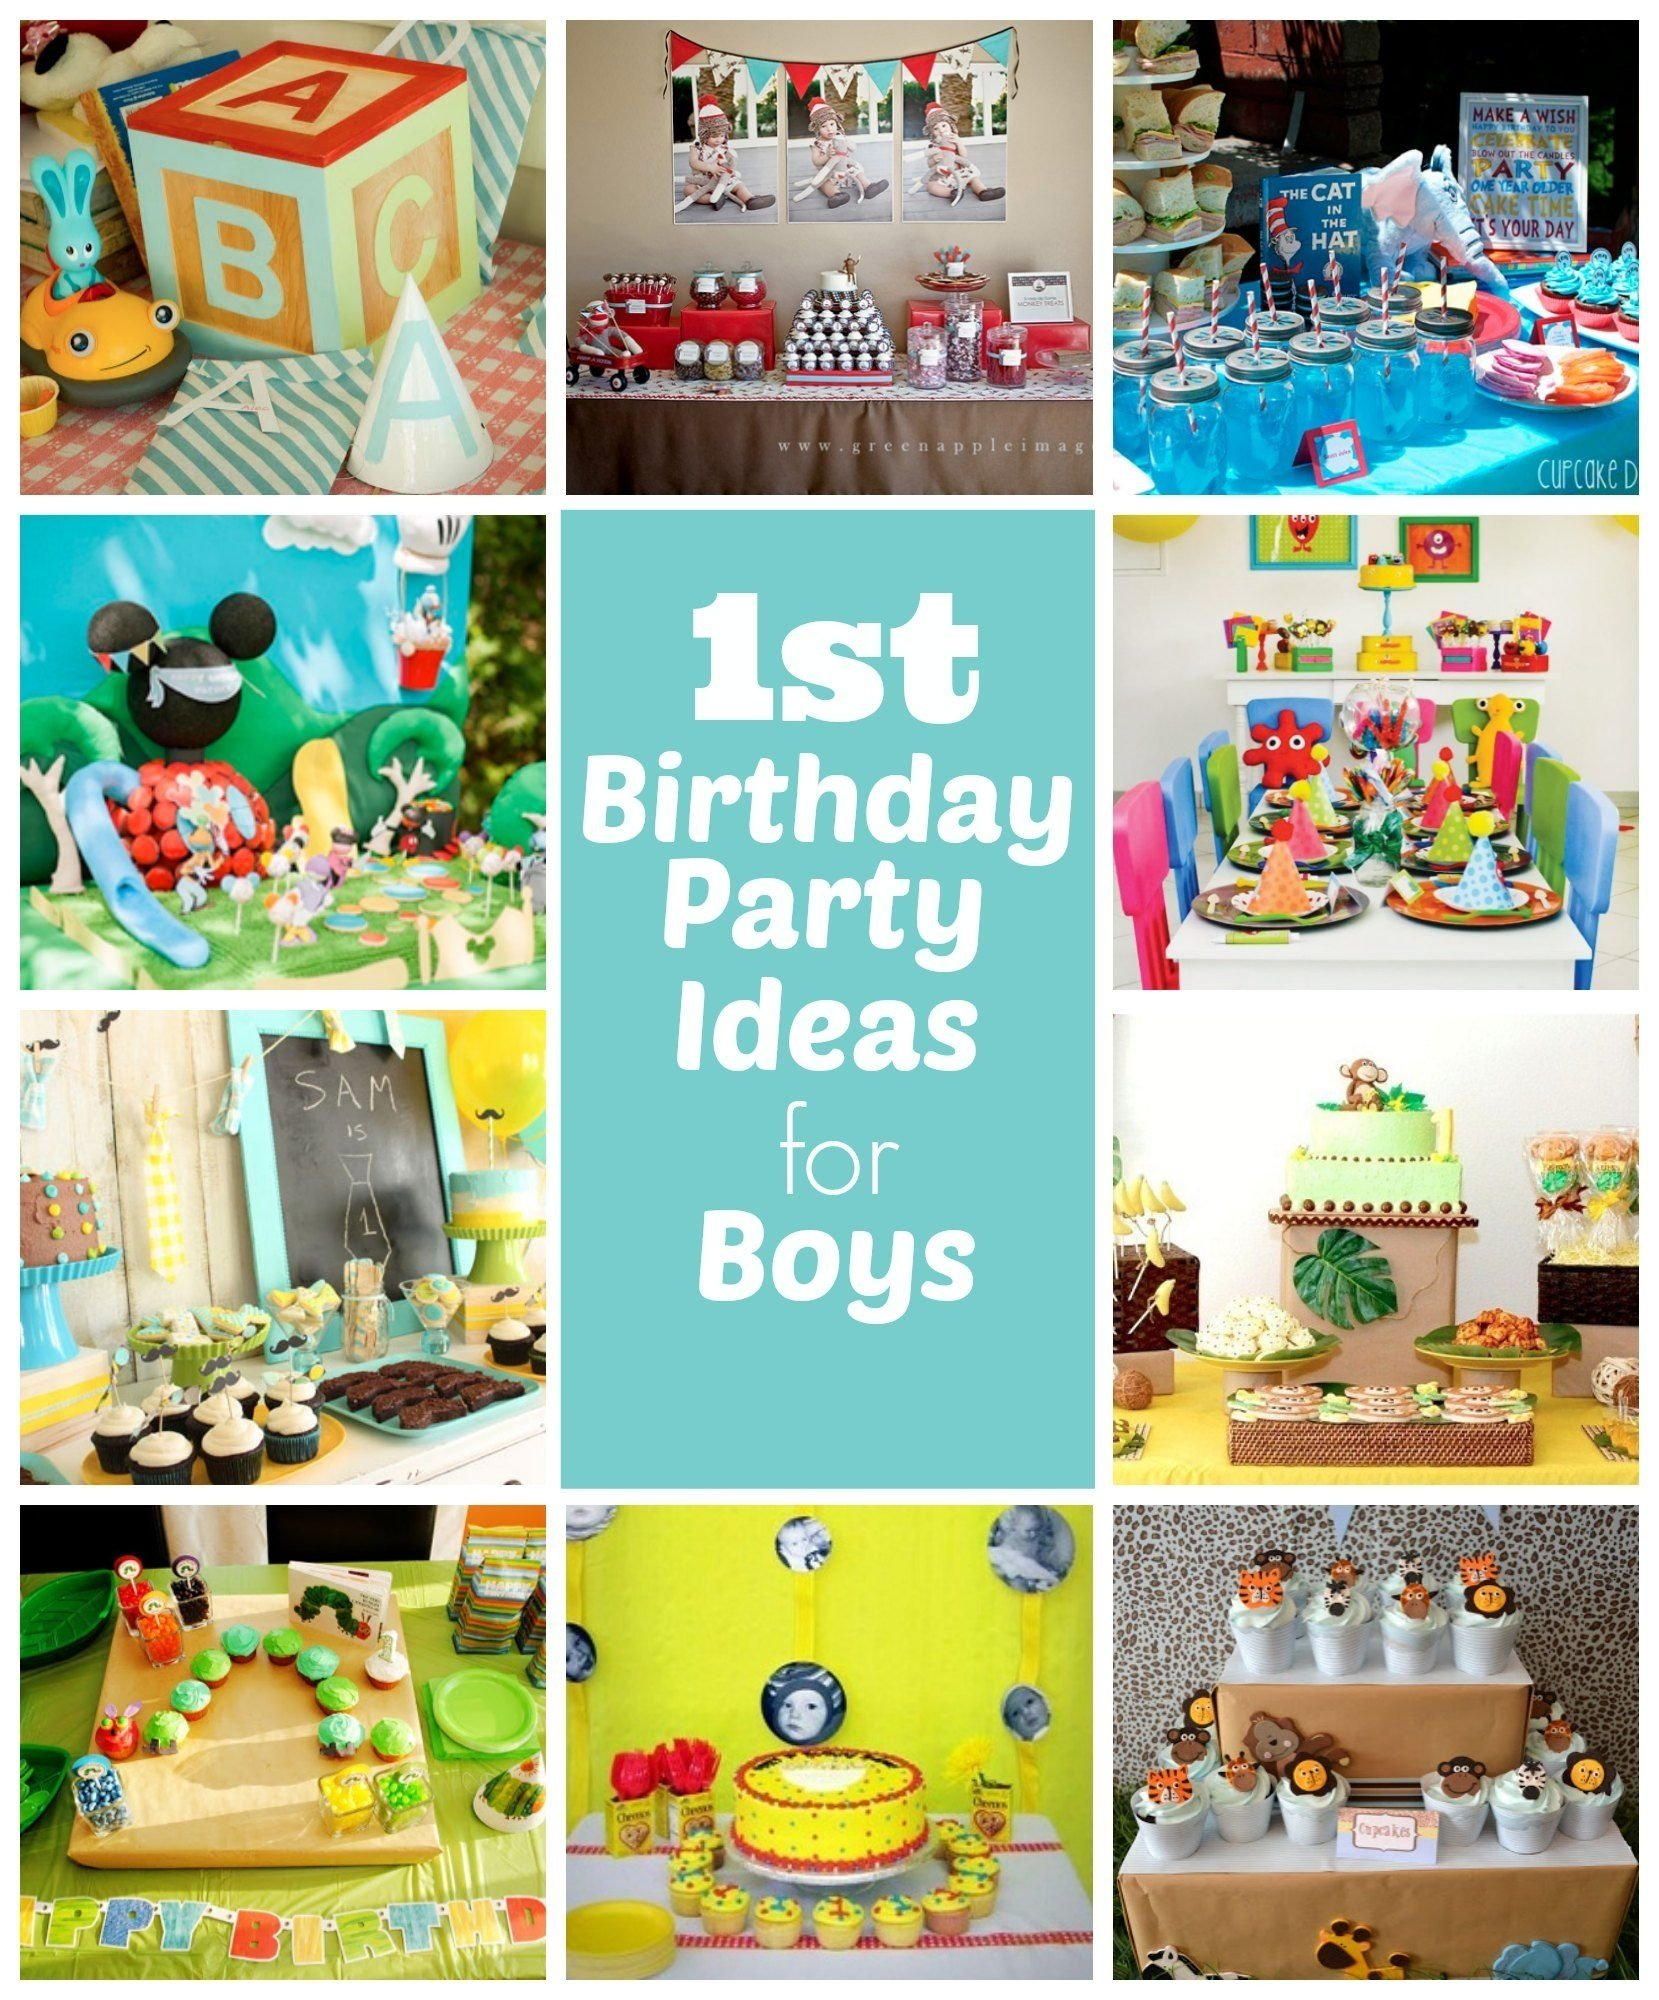 10 Ideal Monkey Themed Birthday Party Ideas 1st birthday party ideas for boys great ideas including very 3 2021